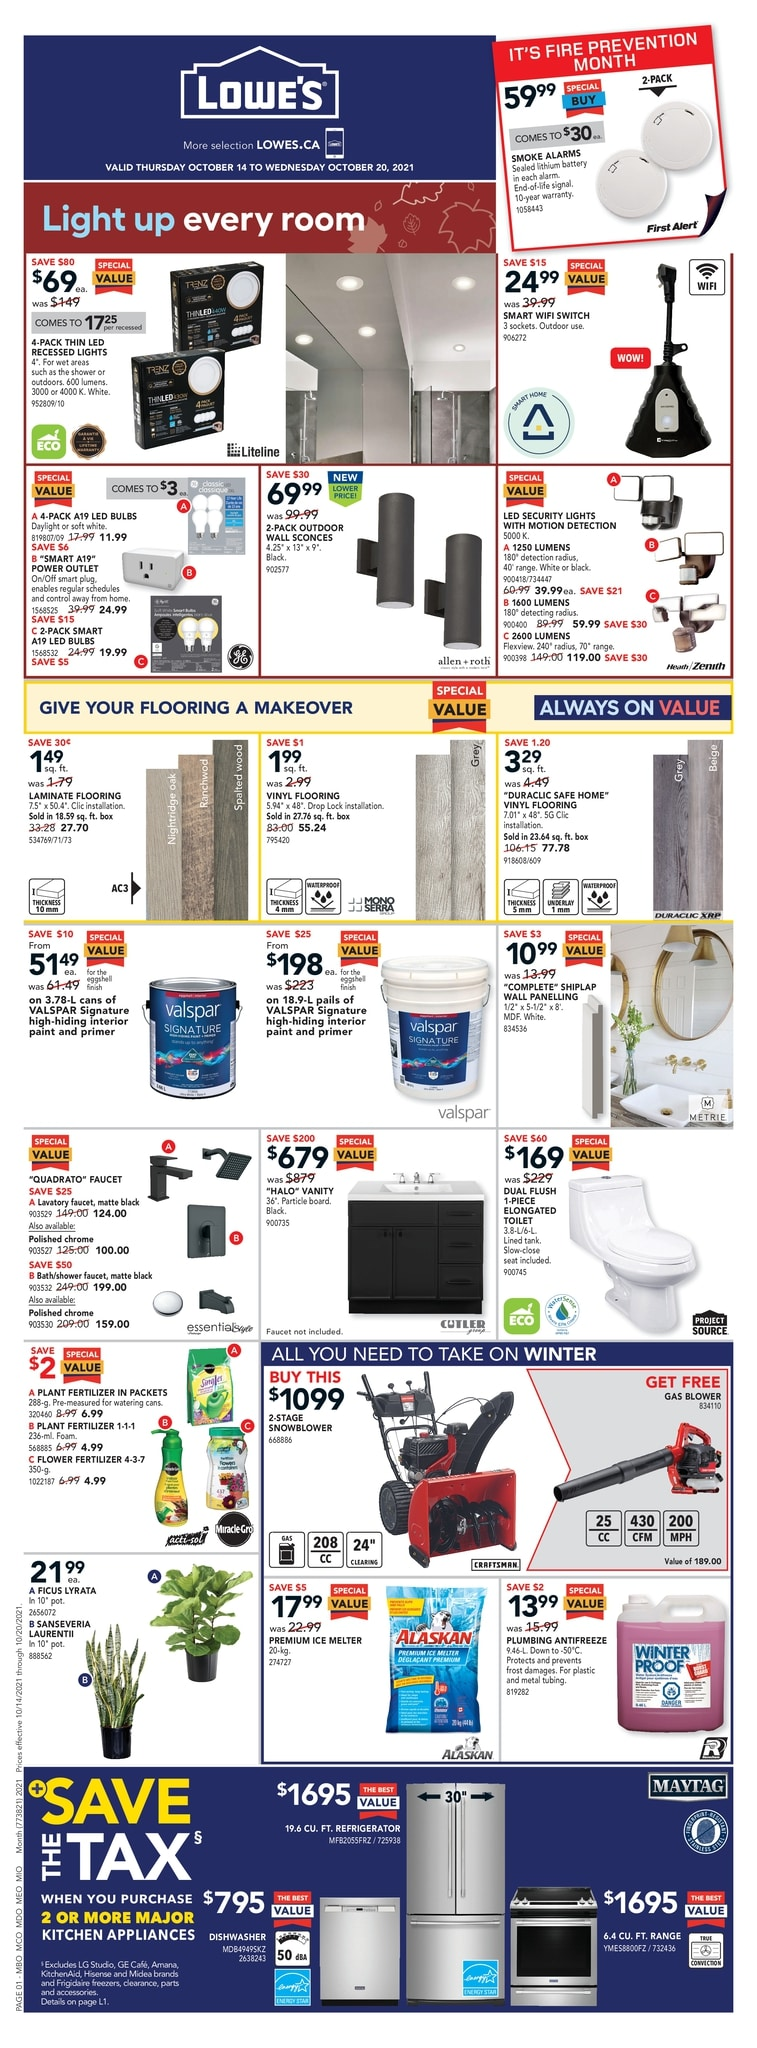 Lowe's - Weekly Flyer Specials